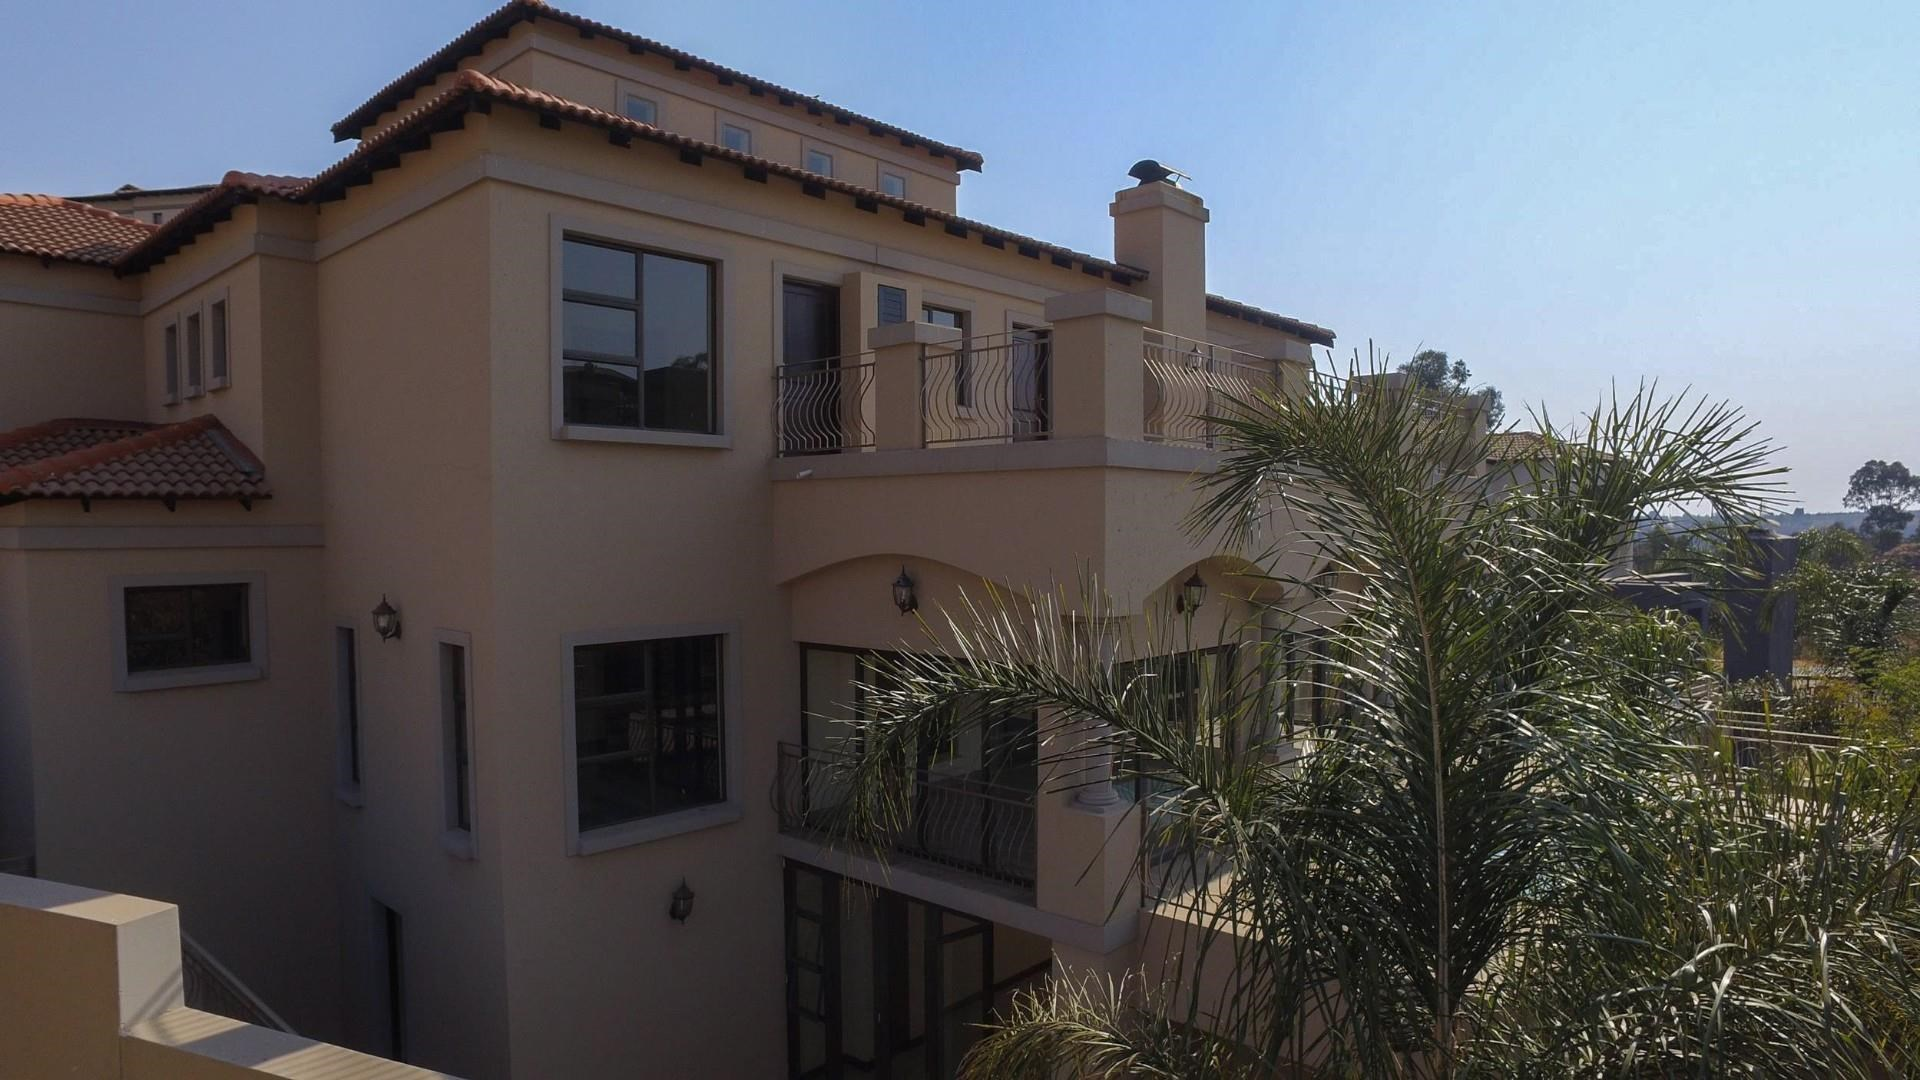 4 Bedroom House for Sale in Chancliff